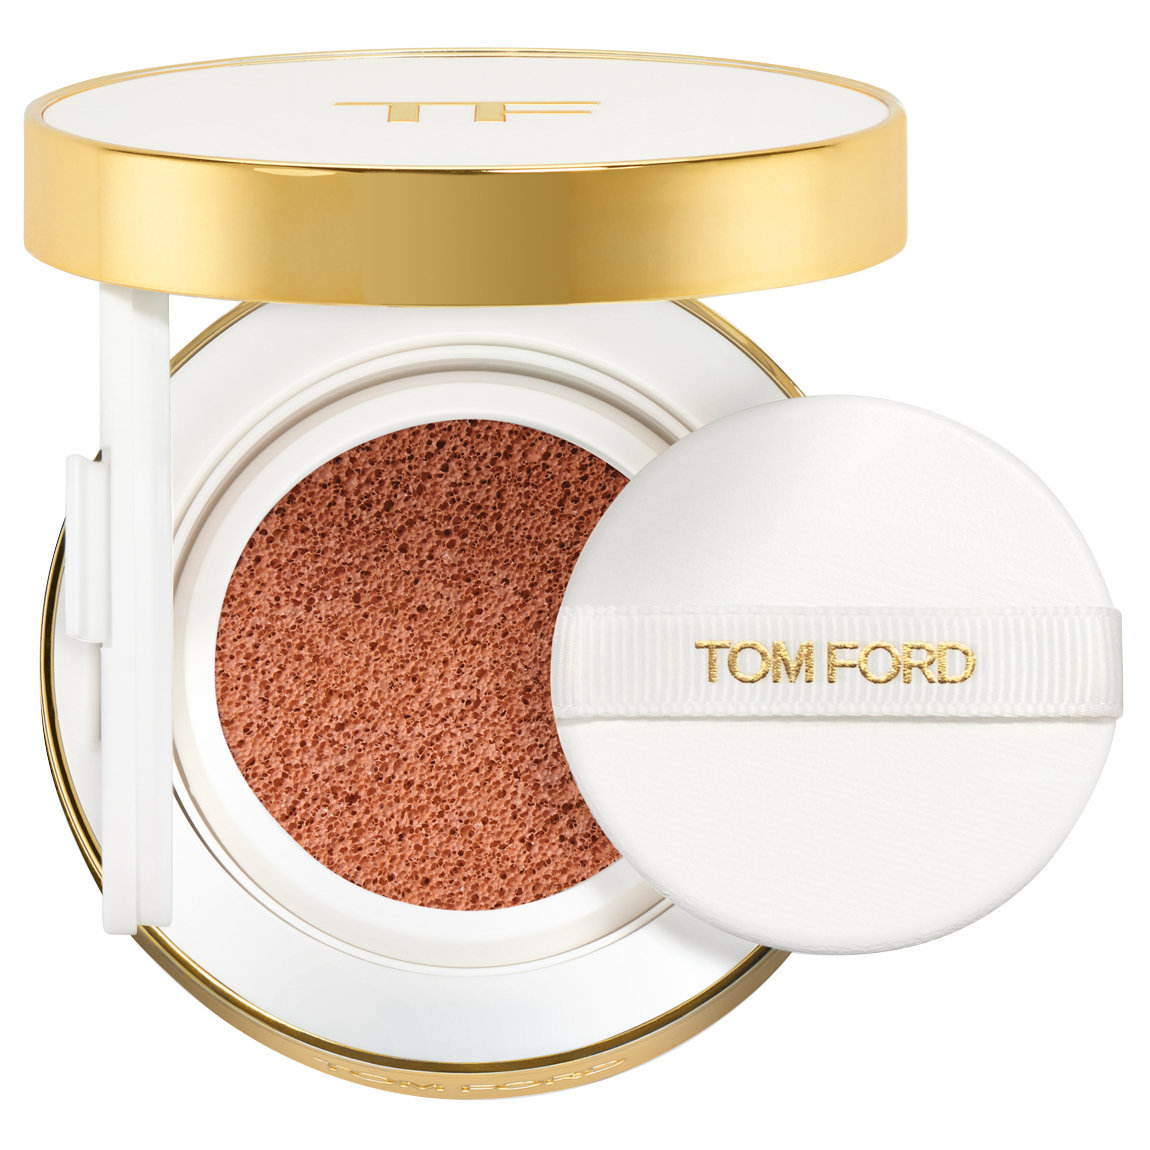 TOM FORD Soleil Glow Tone Up Foundation Hydrating Cushion Compact 3 Peach Glow Tone Up alternative view 1.